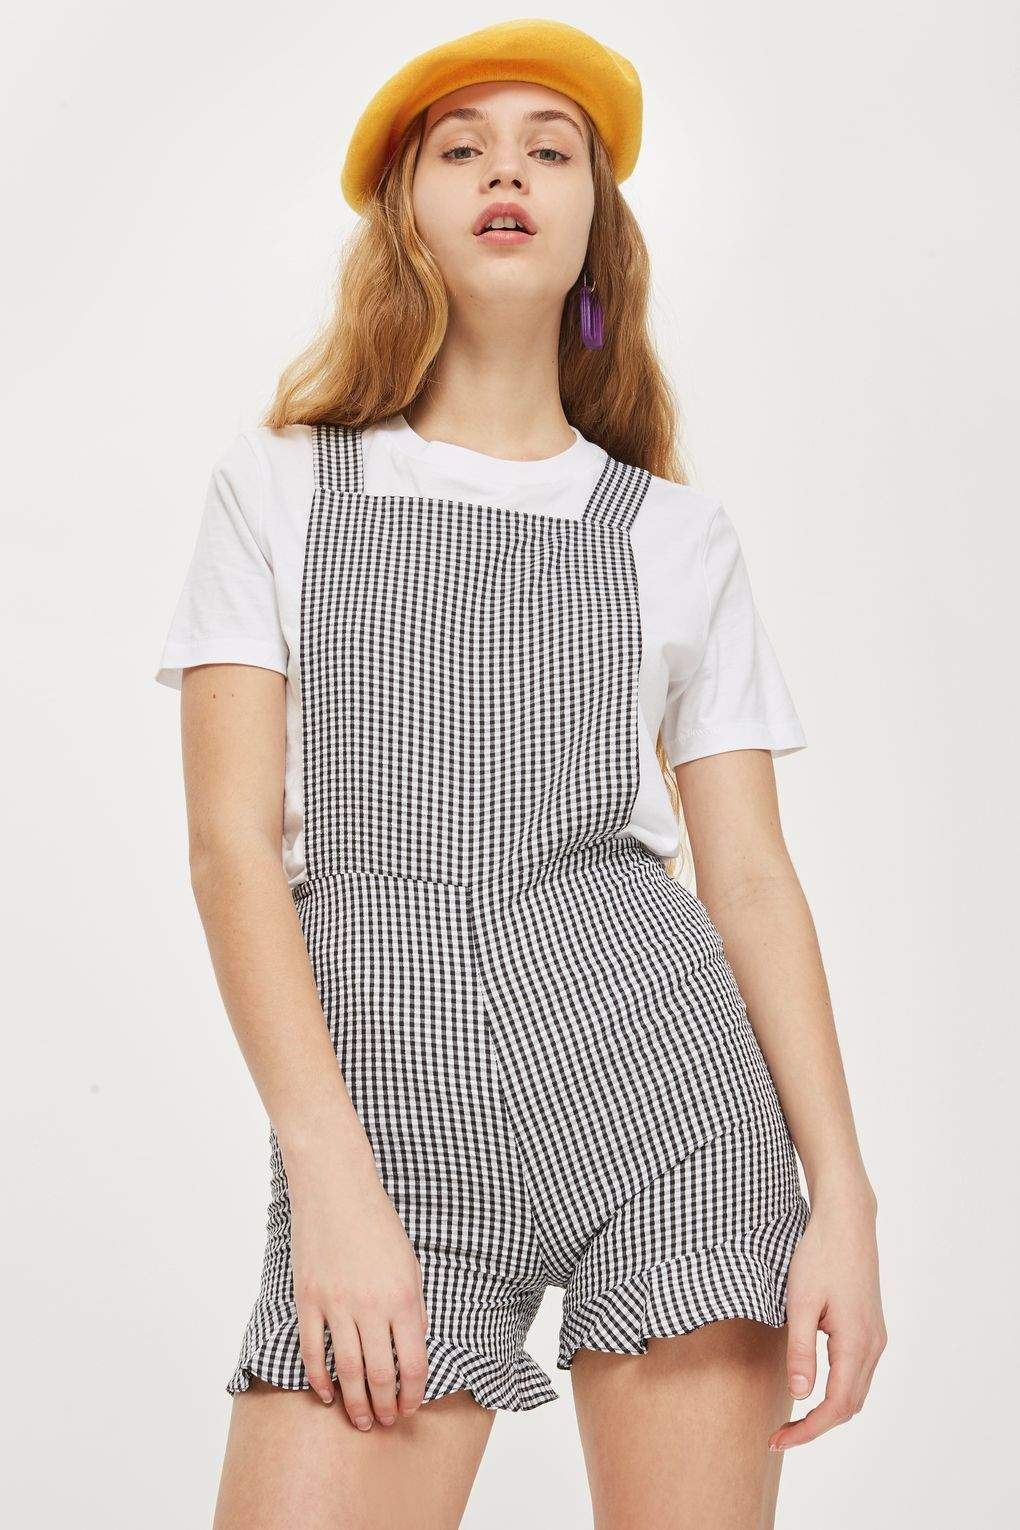 High Street Pinafore Gingham Romper Playsuit in Black - Final Sale - Playsuit - BKLYN Bodies - BKLYN Bodies